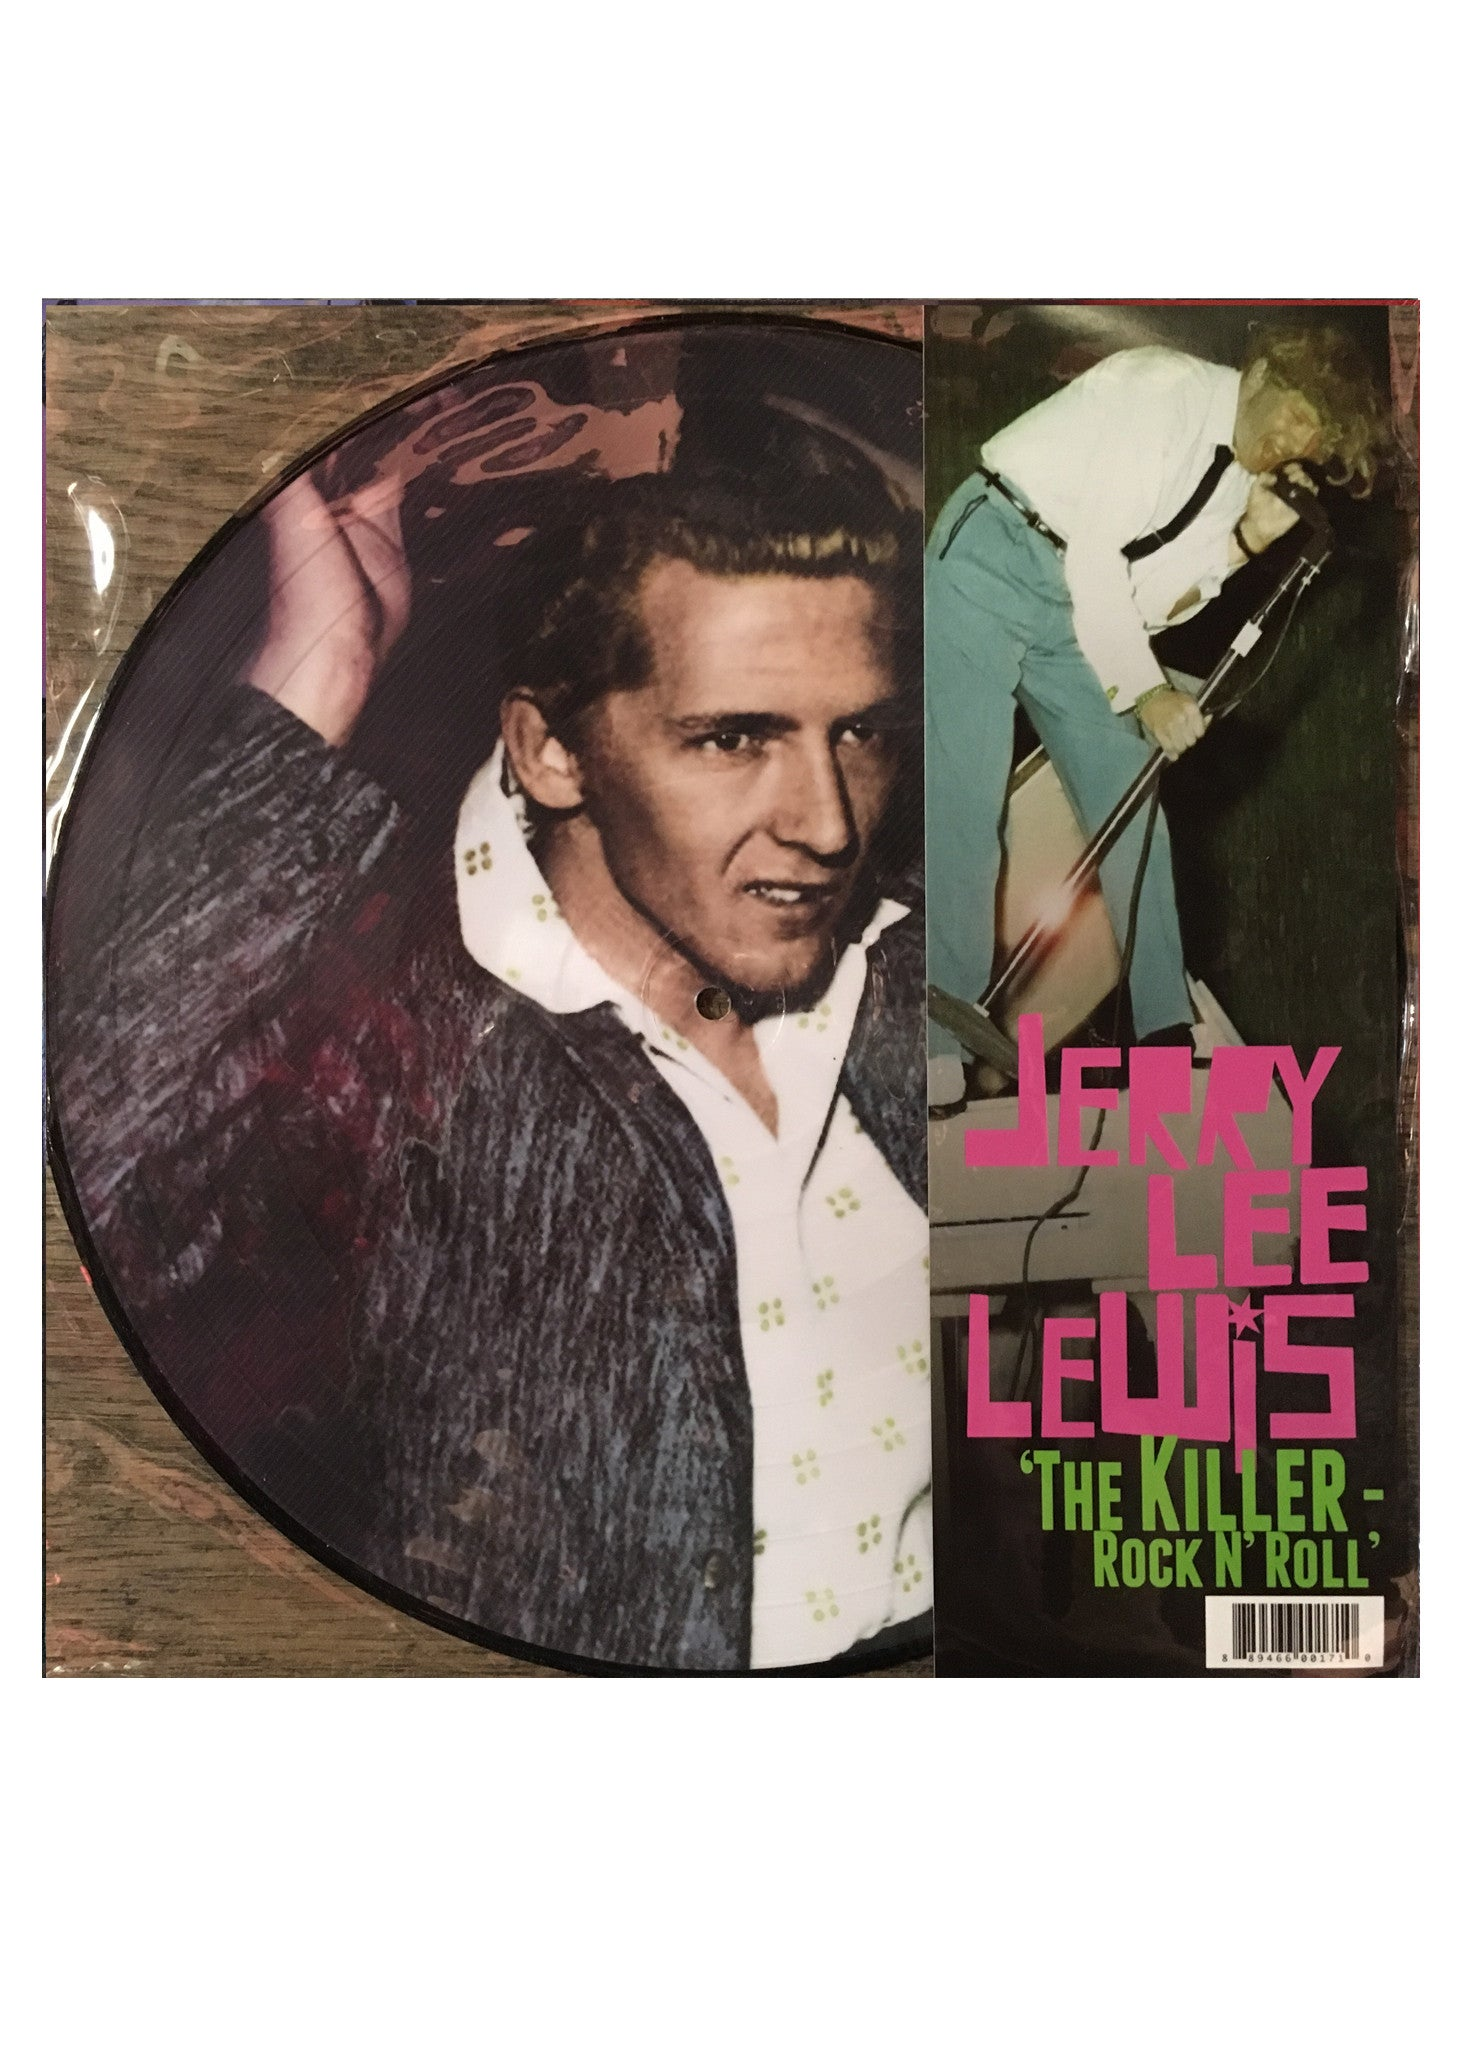 "Jerry Lee Lewis - 'The Killer' Rock 'N' Roll (LP 12"")"